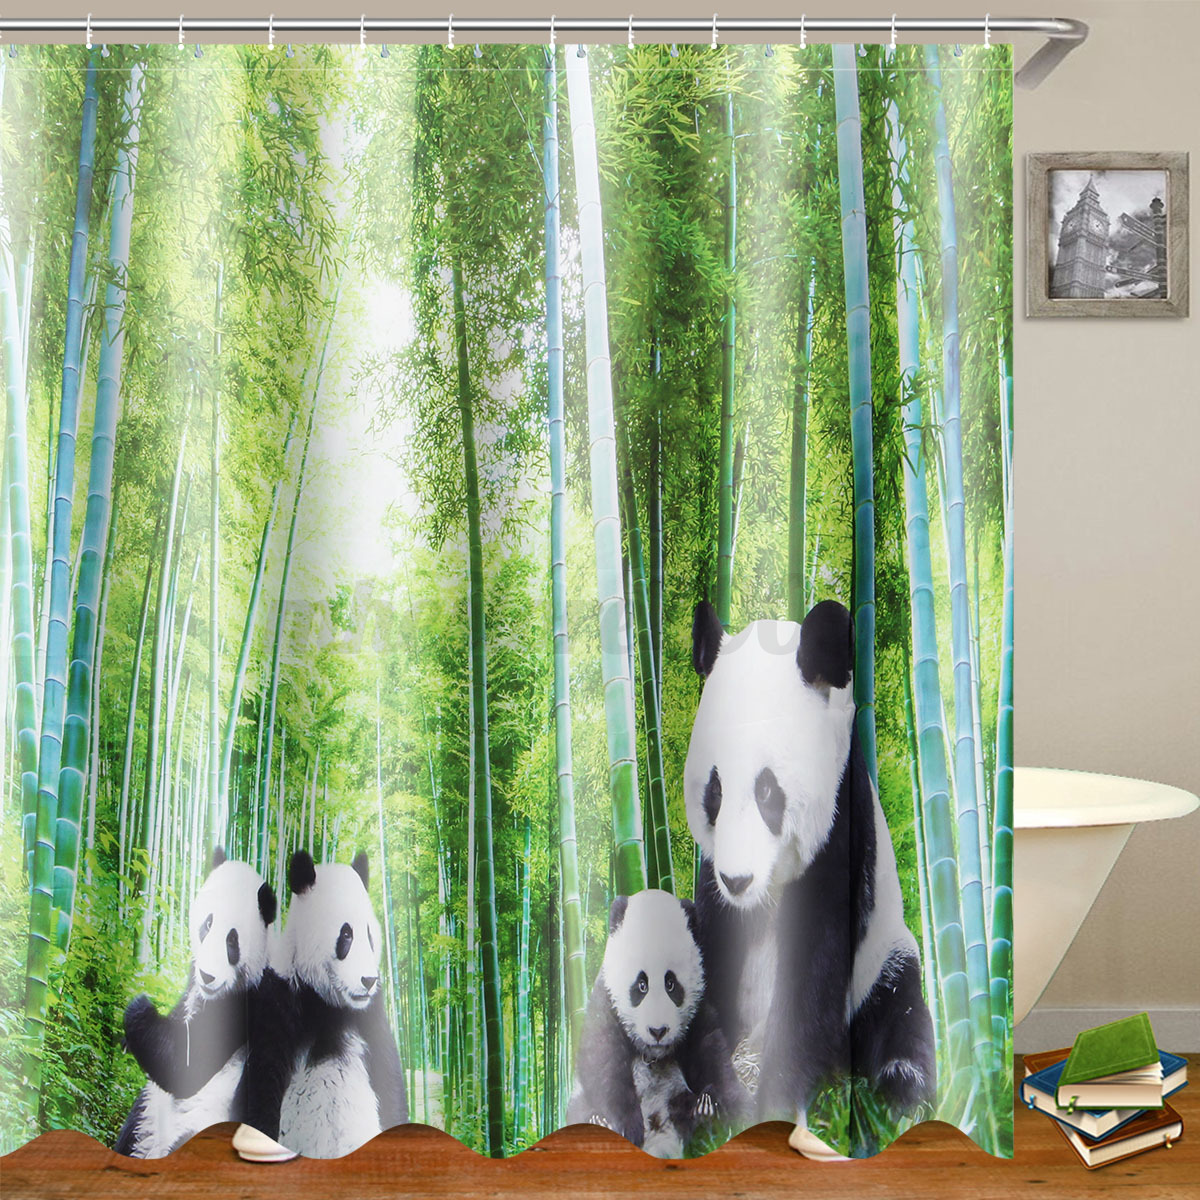 4Pcs-Panda-Bamboo-Decor-Non-Slip-Rug-Toilet-Lid-Cover-Bath-Mat-Shower thumbnail 8